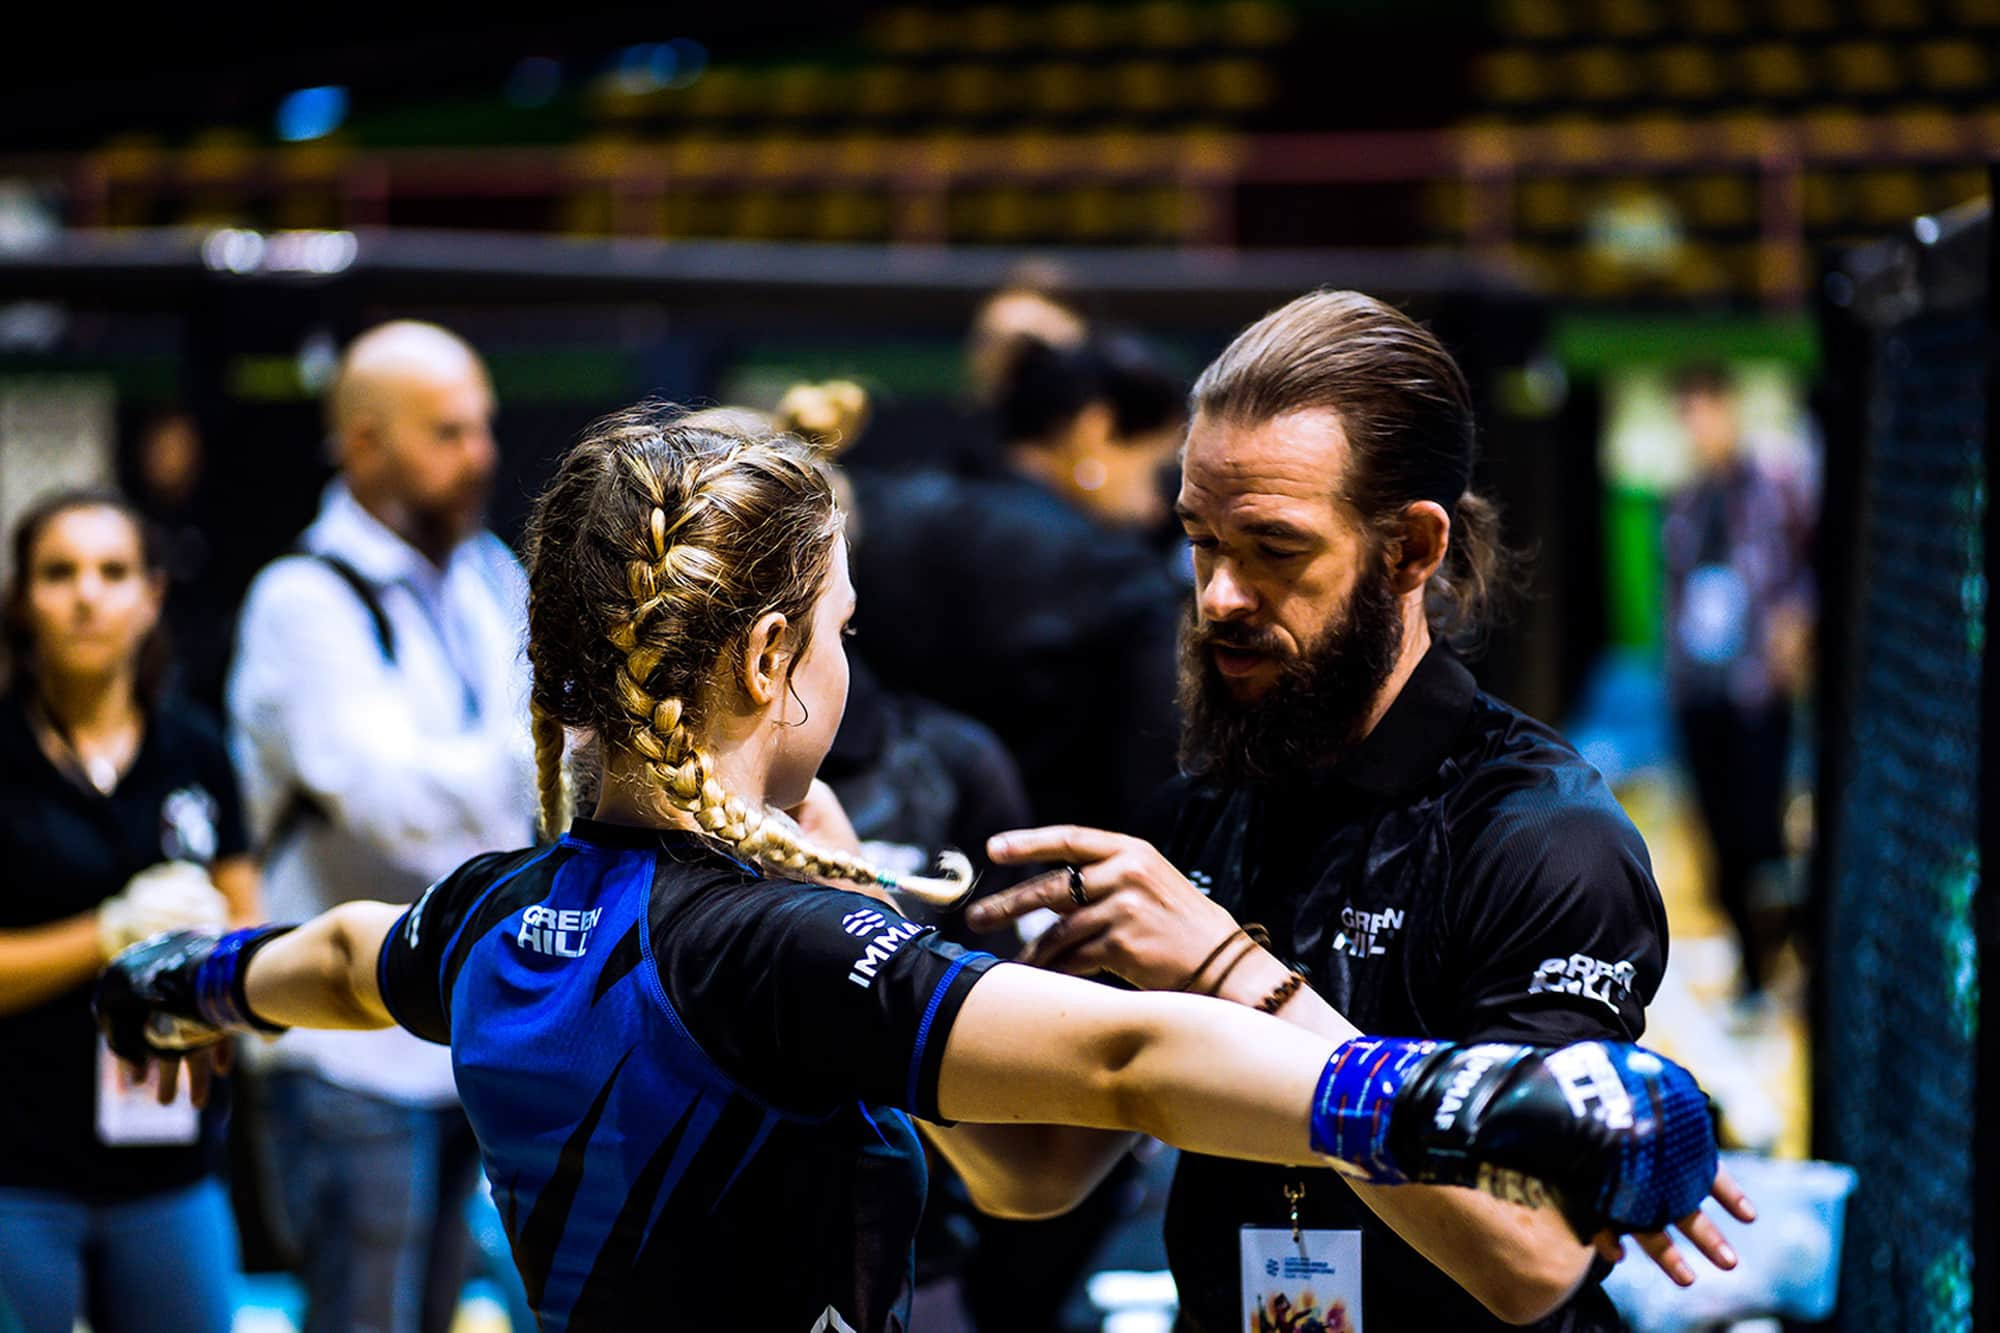 Youth development plays a large part in IMMAF's ambitions to grow mixed martial arts ©IMMAF